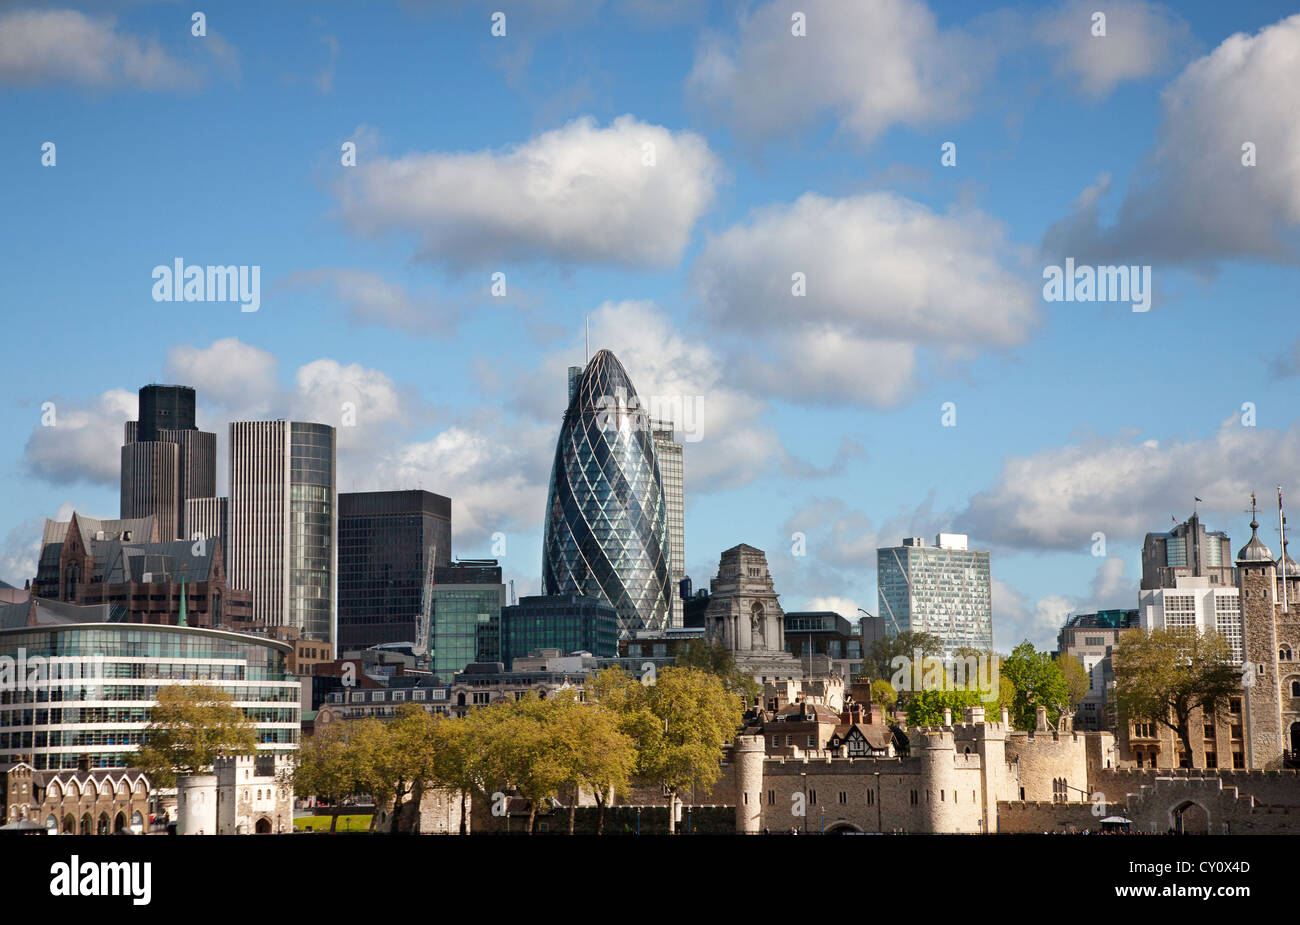 England. London. City skyline with the Gherkin building. - Stock Image